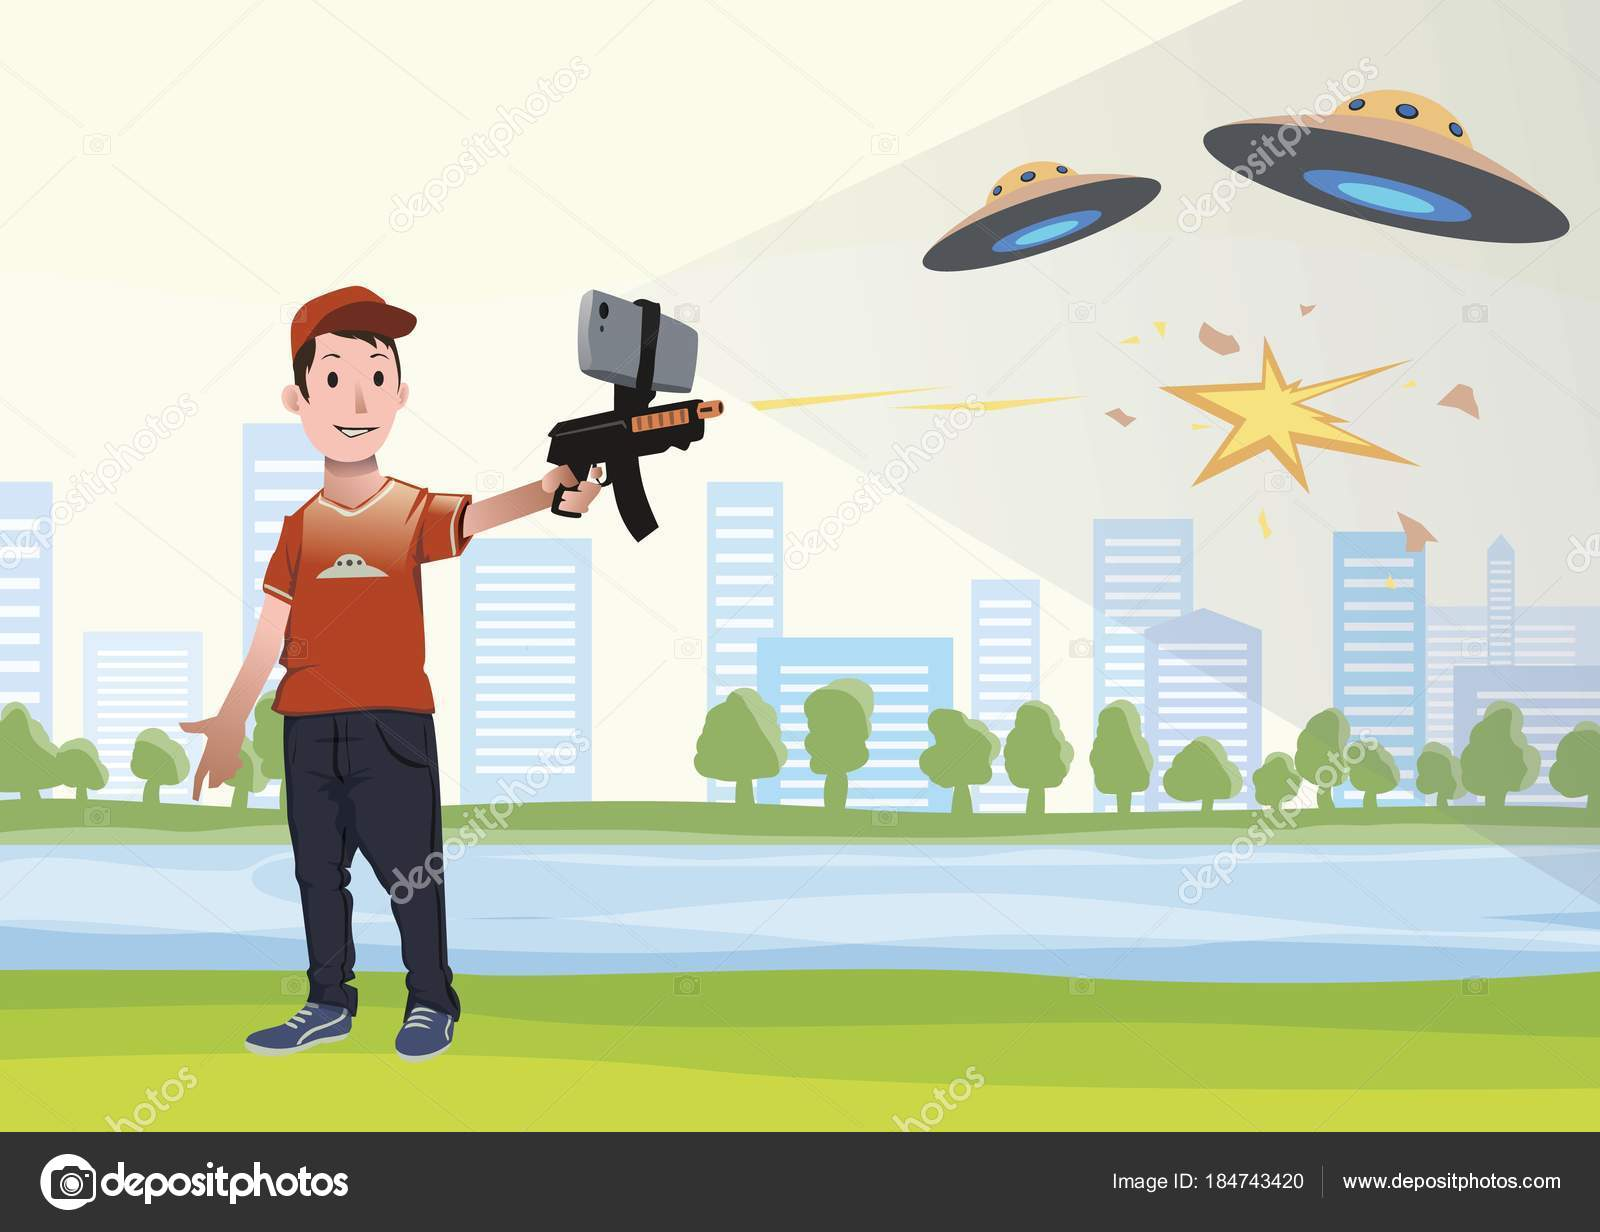 Boy With AR Gun Playing A Shooter Game Weapon Mobile Phone Vector Illustration In Flat Style By Goodstockeryandexru